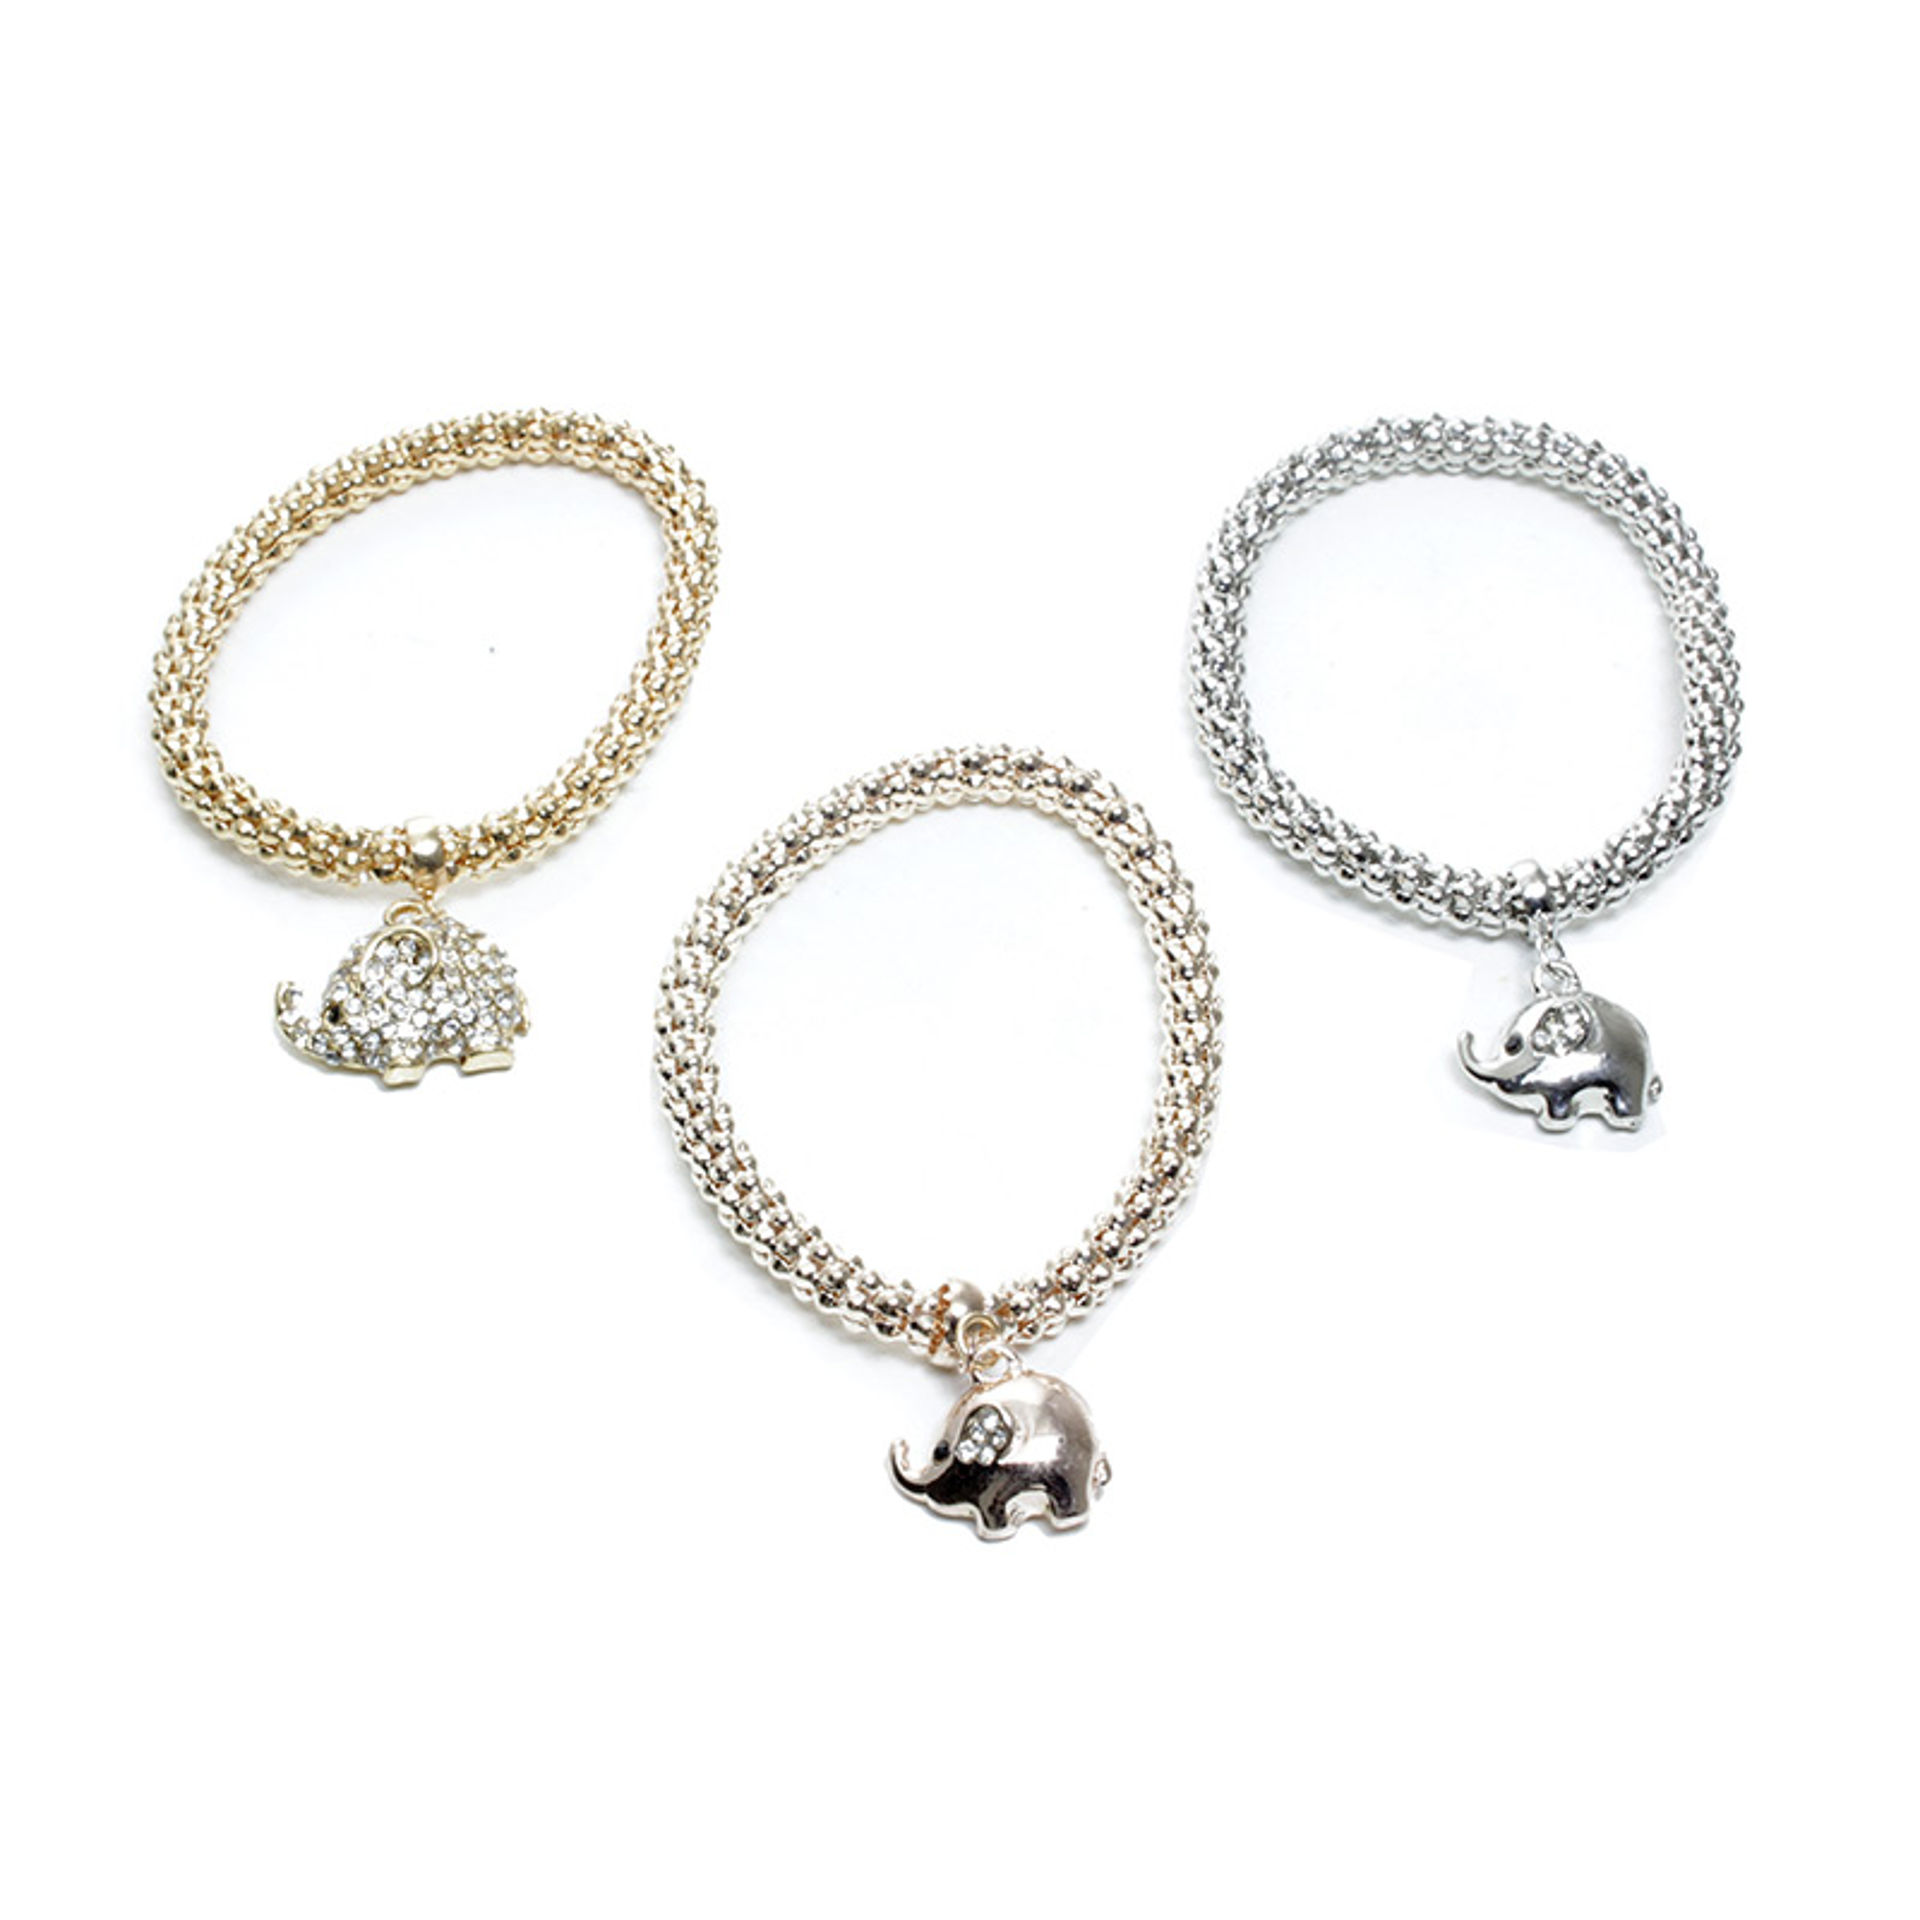 Picture of Set Of 3 Elephant Charm Chain Bracelets